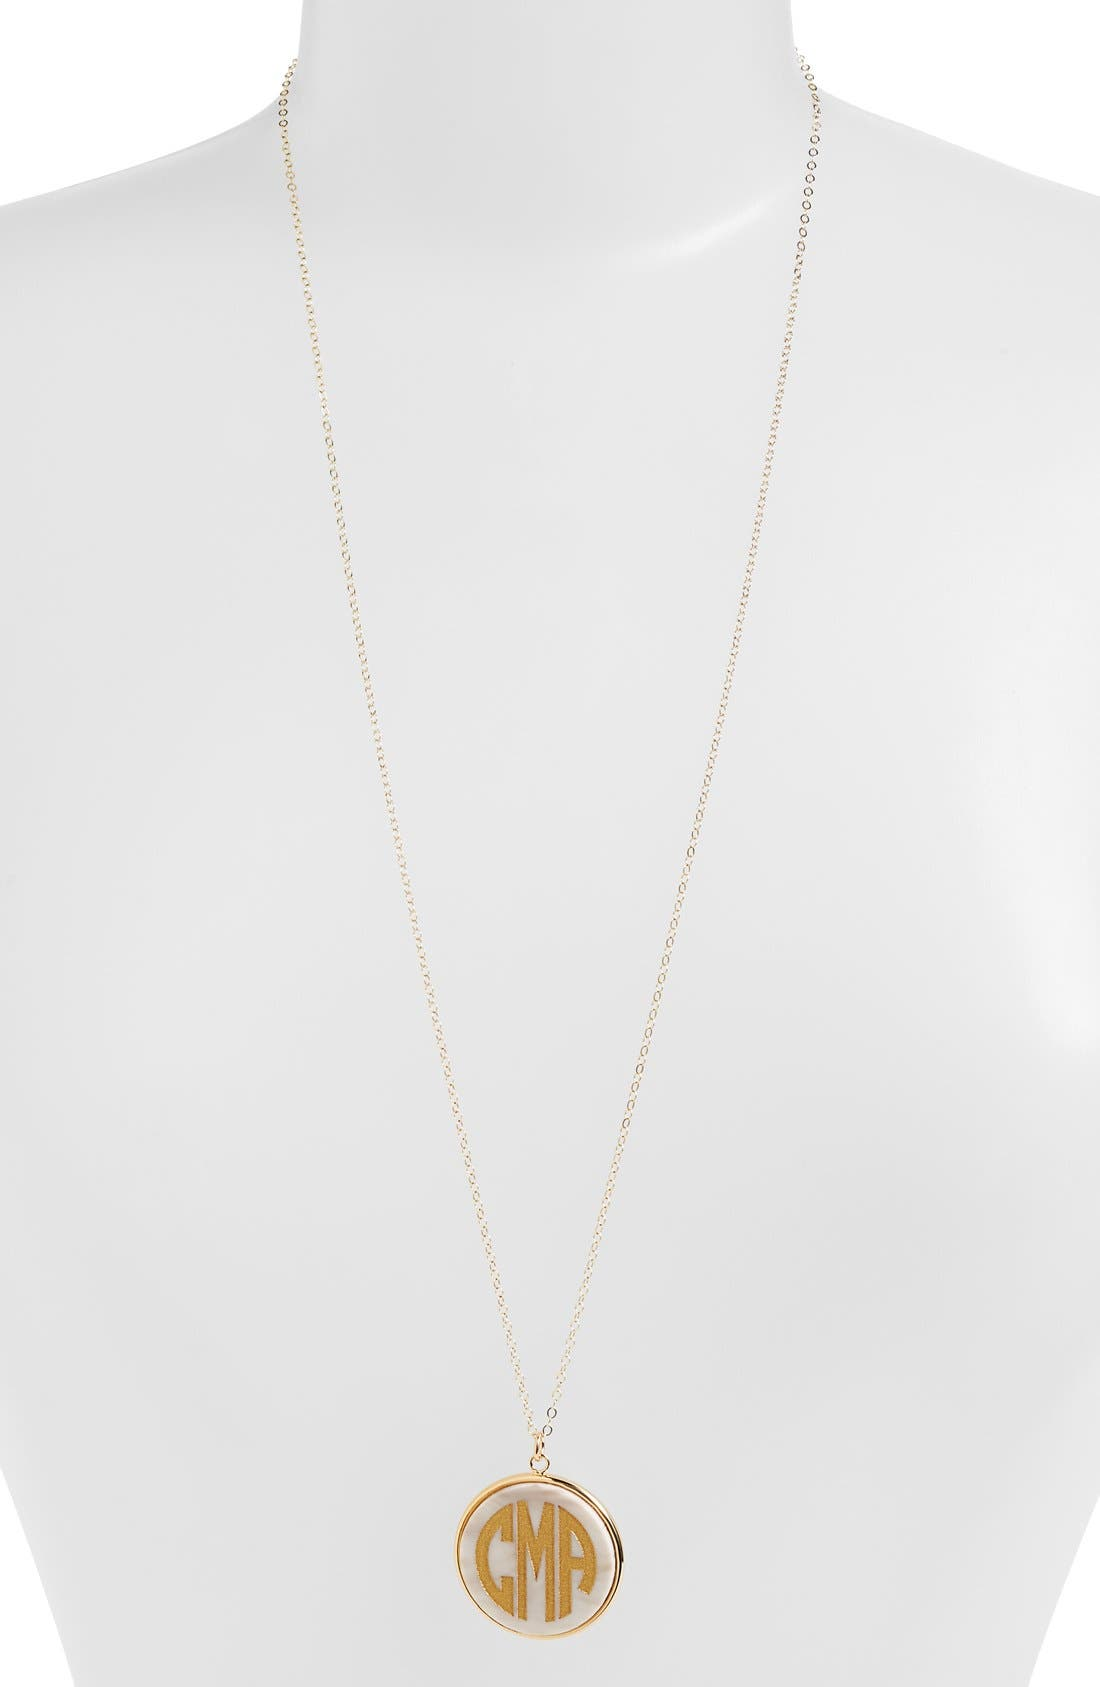 MOON AND LOLA 'Vineyard' Personalized Monogram Pendant Necklace in Blonde Tortoise